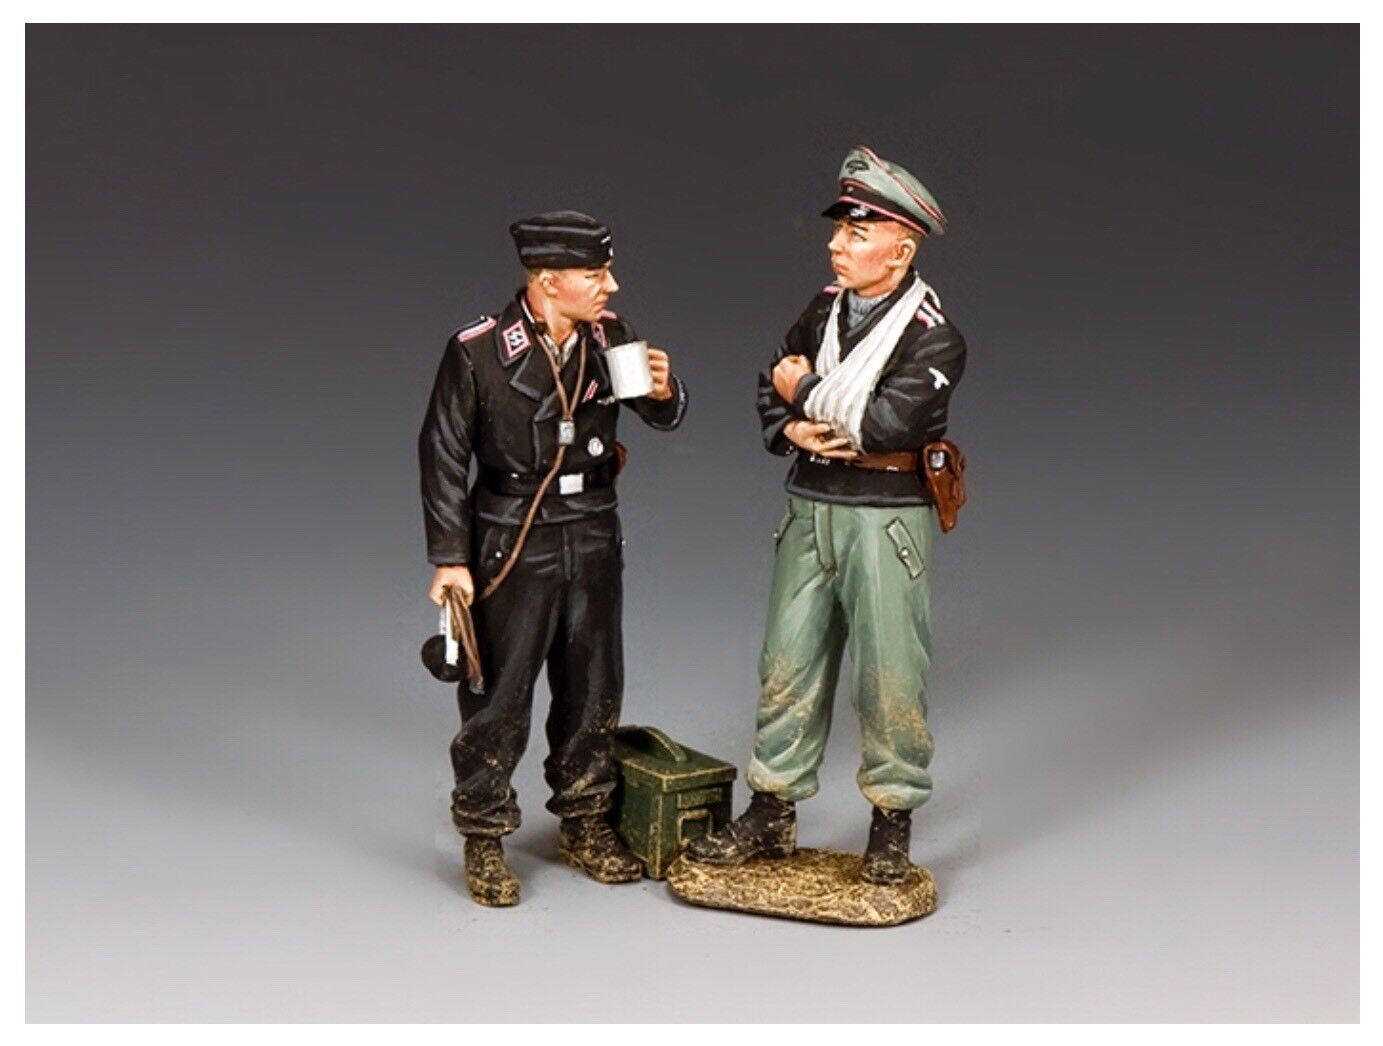 WS346 WW2 2x German Dismounted Panzer Tank Crew Mint in Box D-Day Normandy